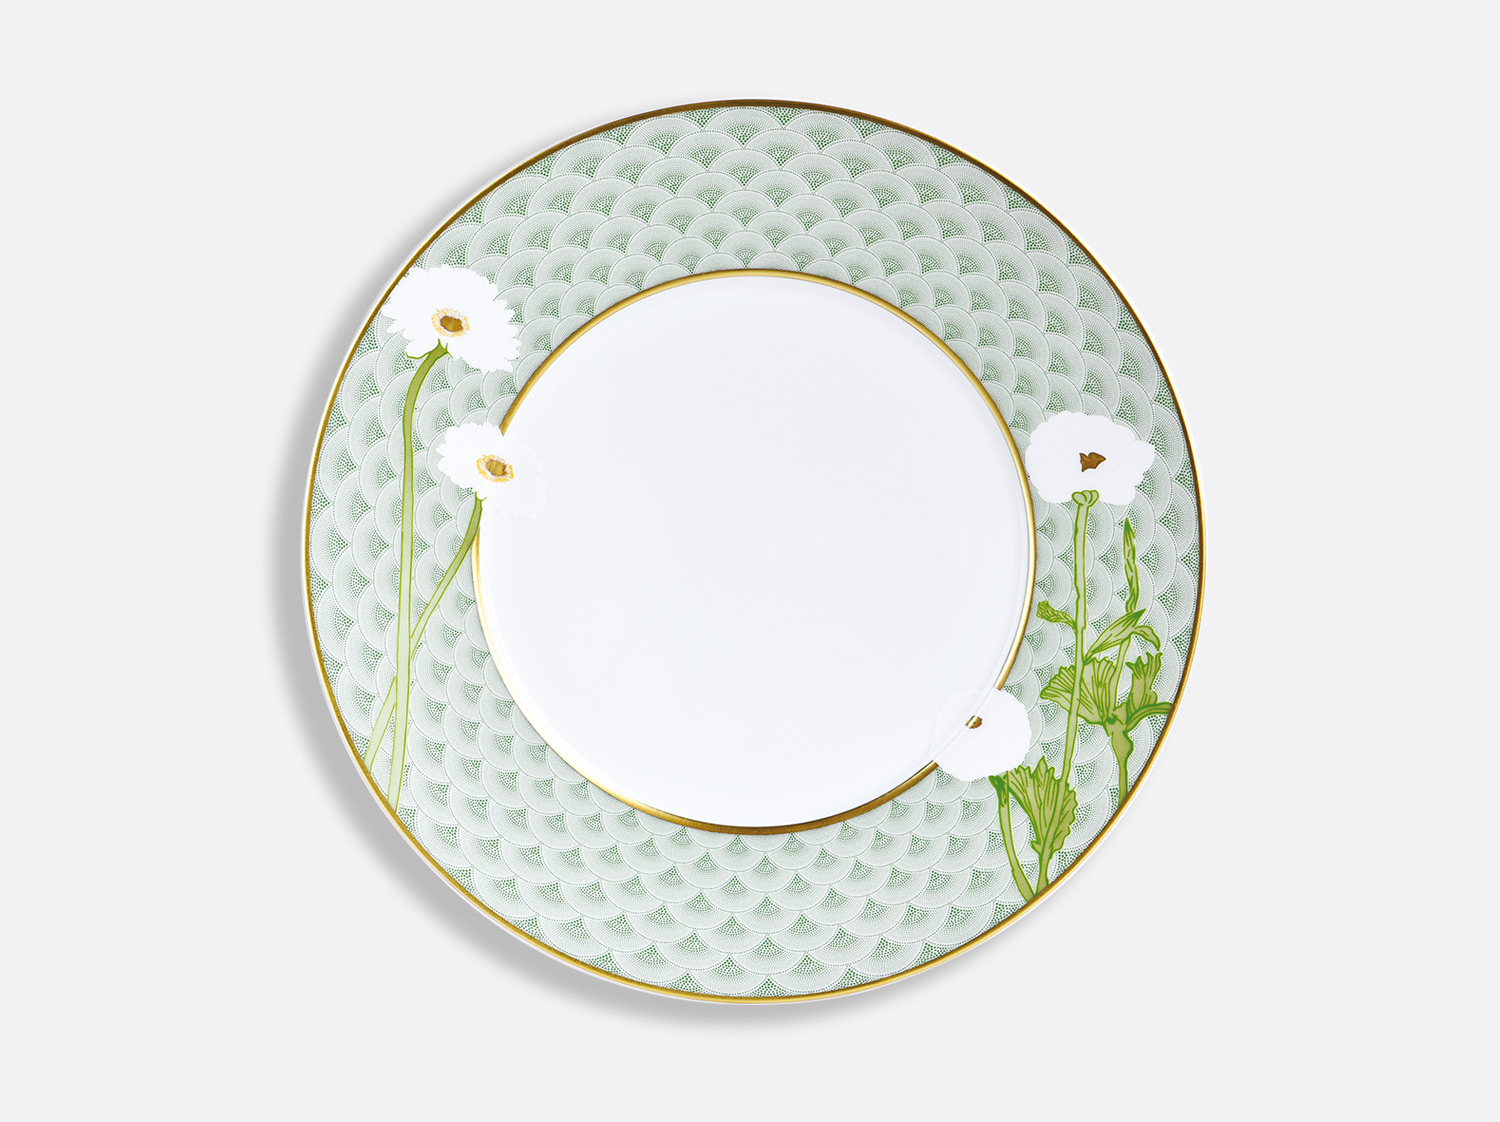 Assiette à dîner 27 cm en porcelaine de la collection PRAIANA Bernardaud